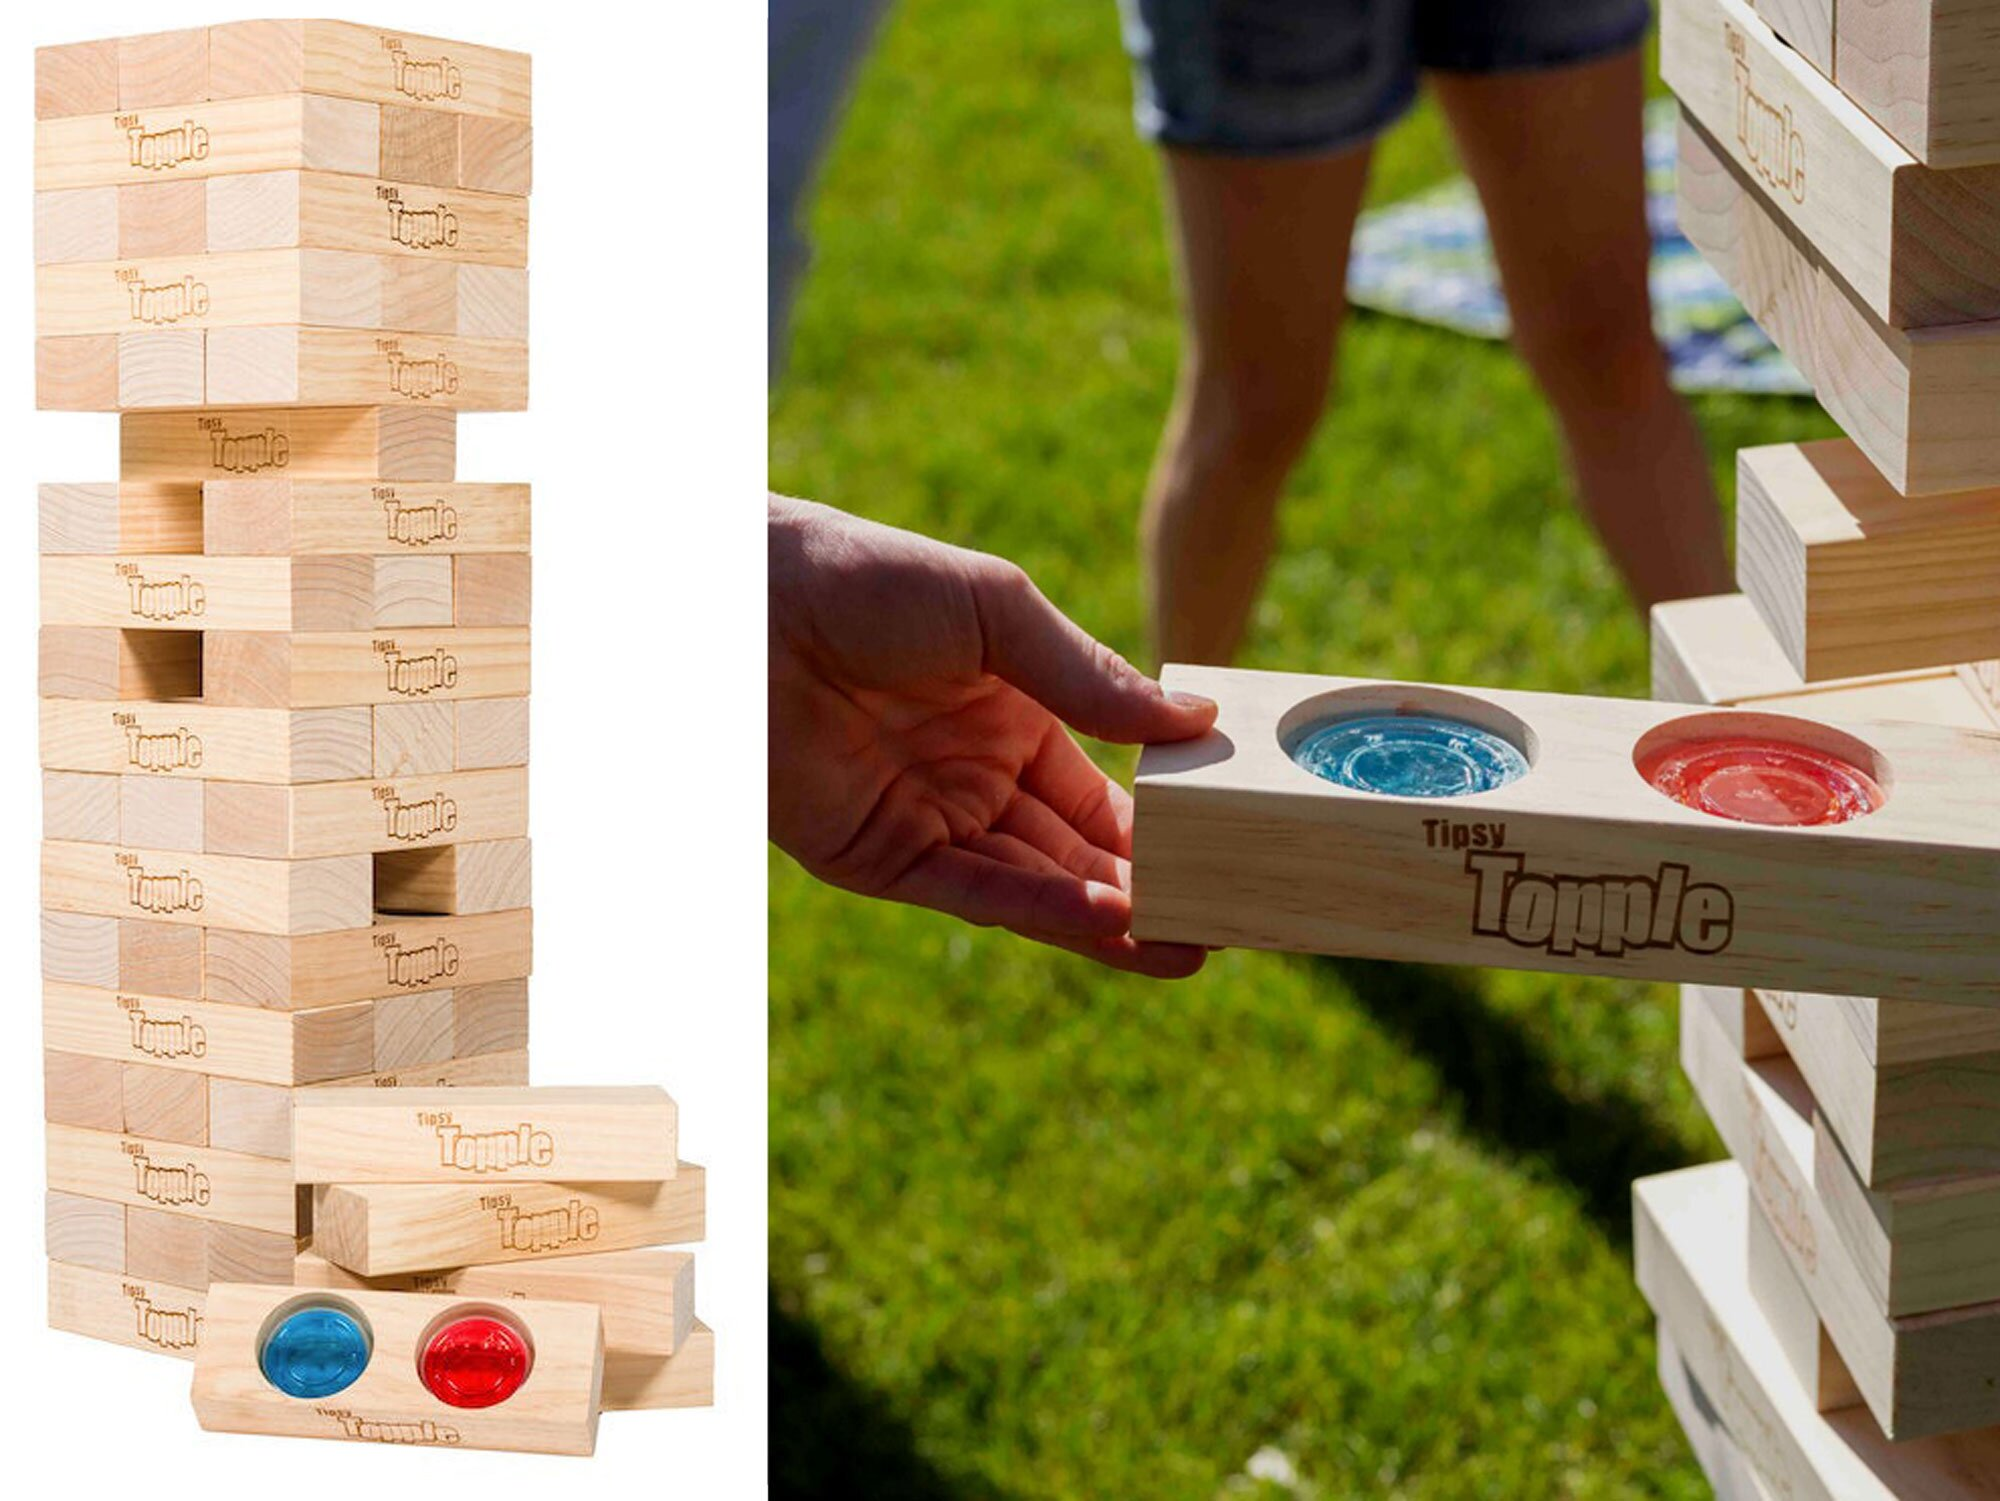 Cheers! This Giant Jenga-Inspired Set Is Filled With Hidden Jello Shots for the Best Drinking Game Ever